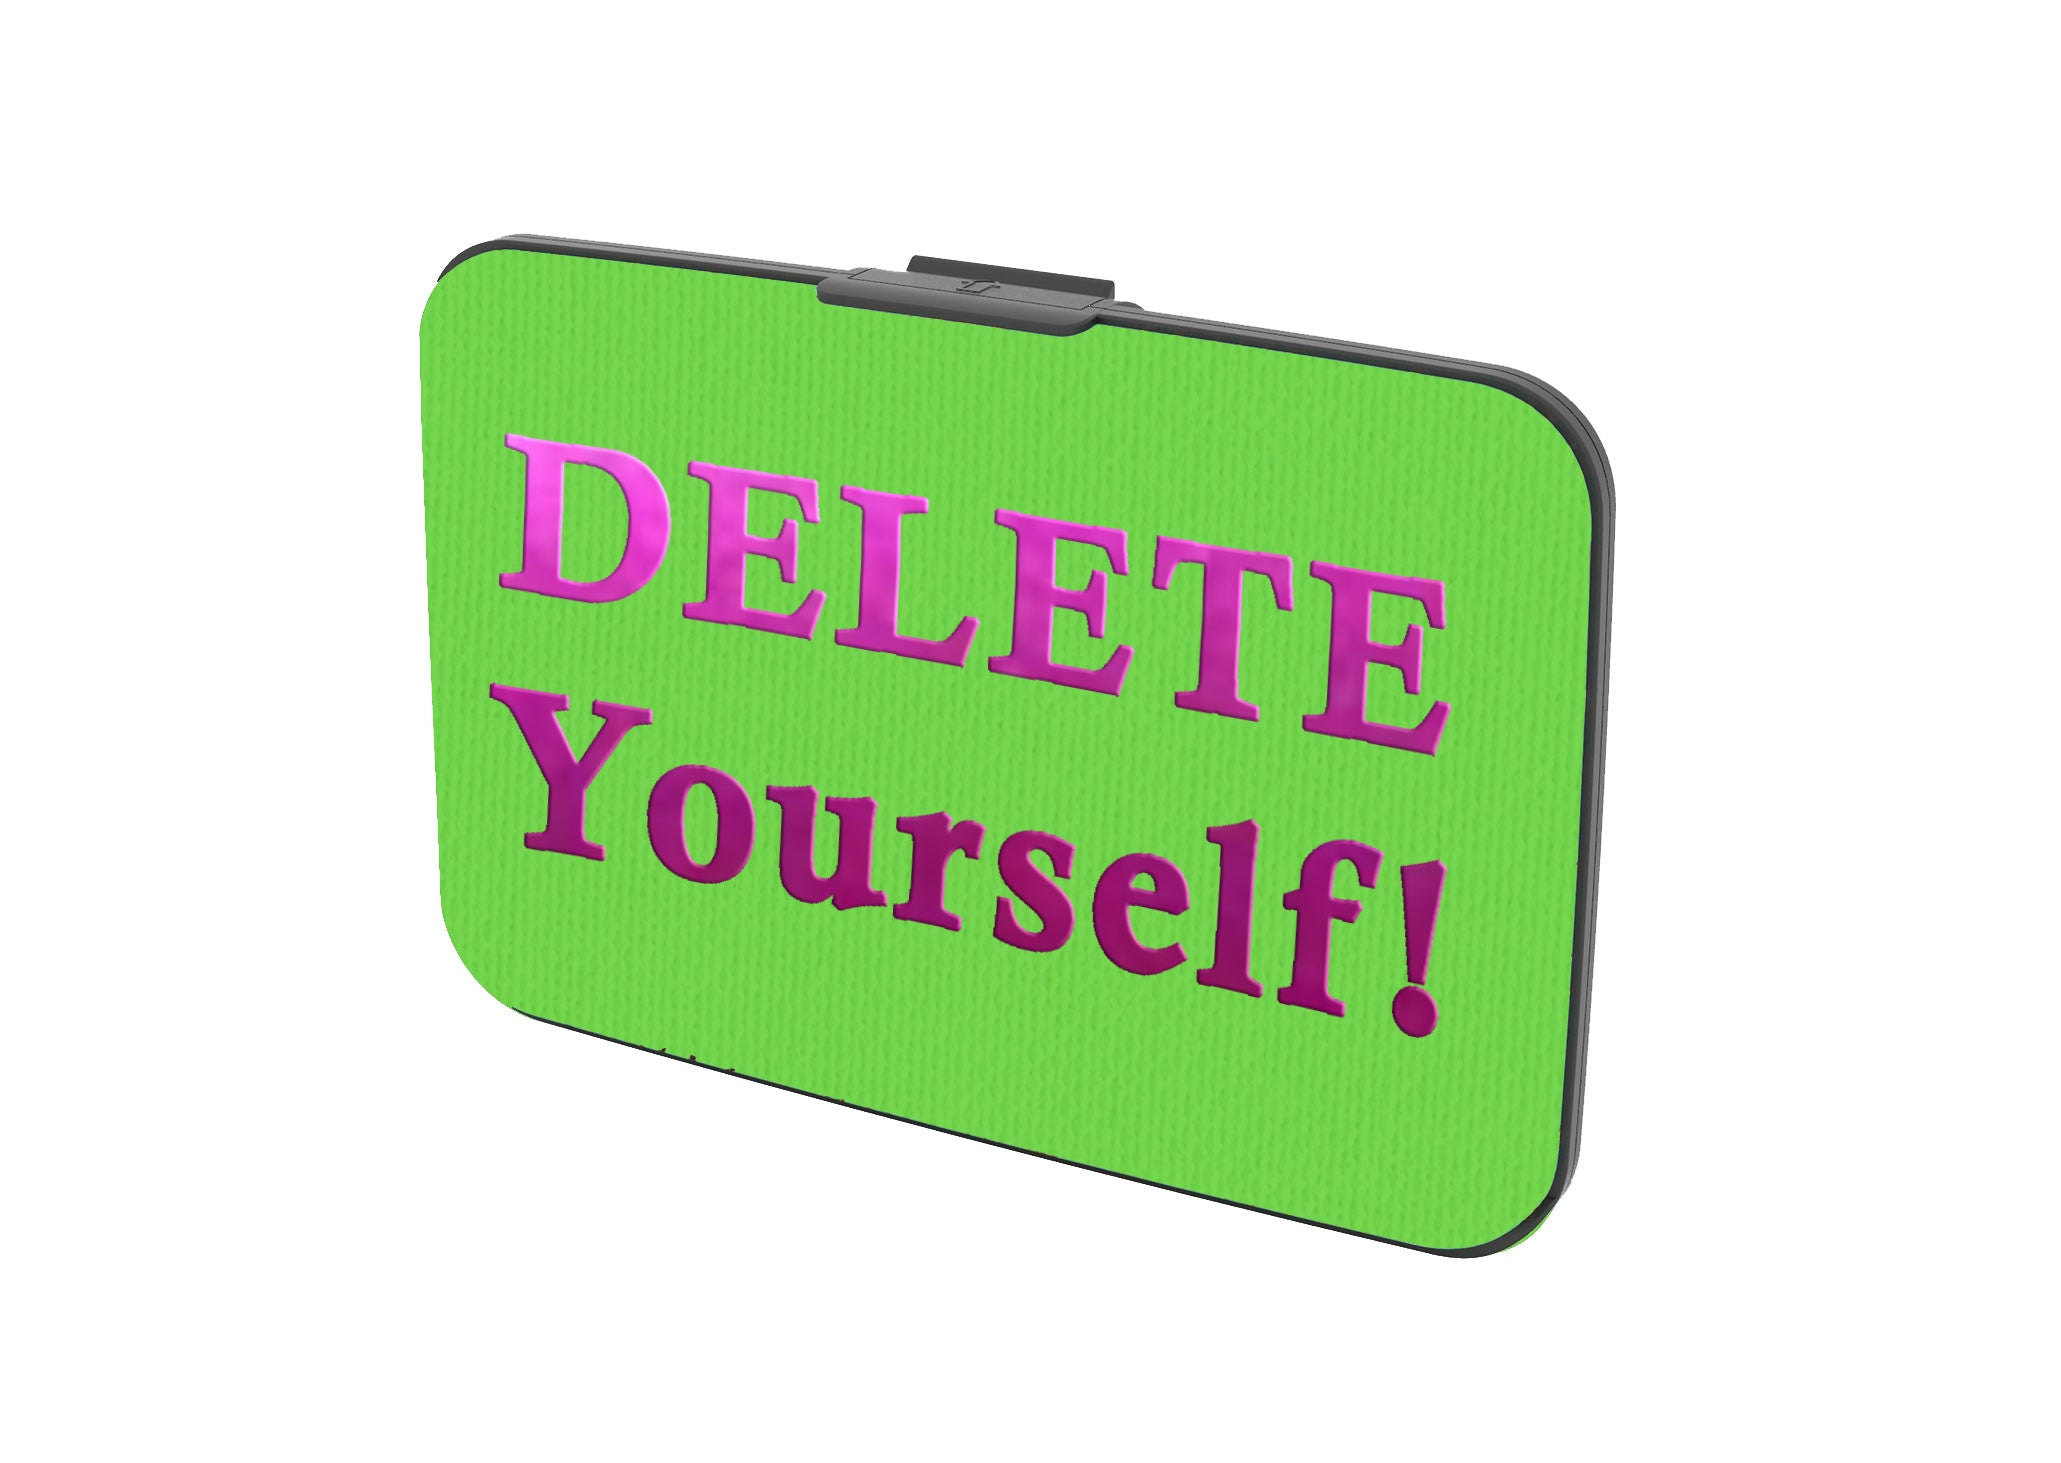 Delete Yourself! - Canvas Security Wallet